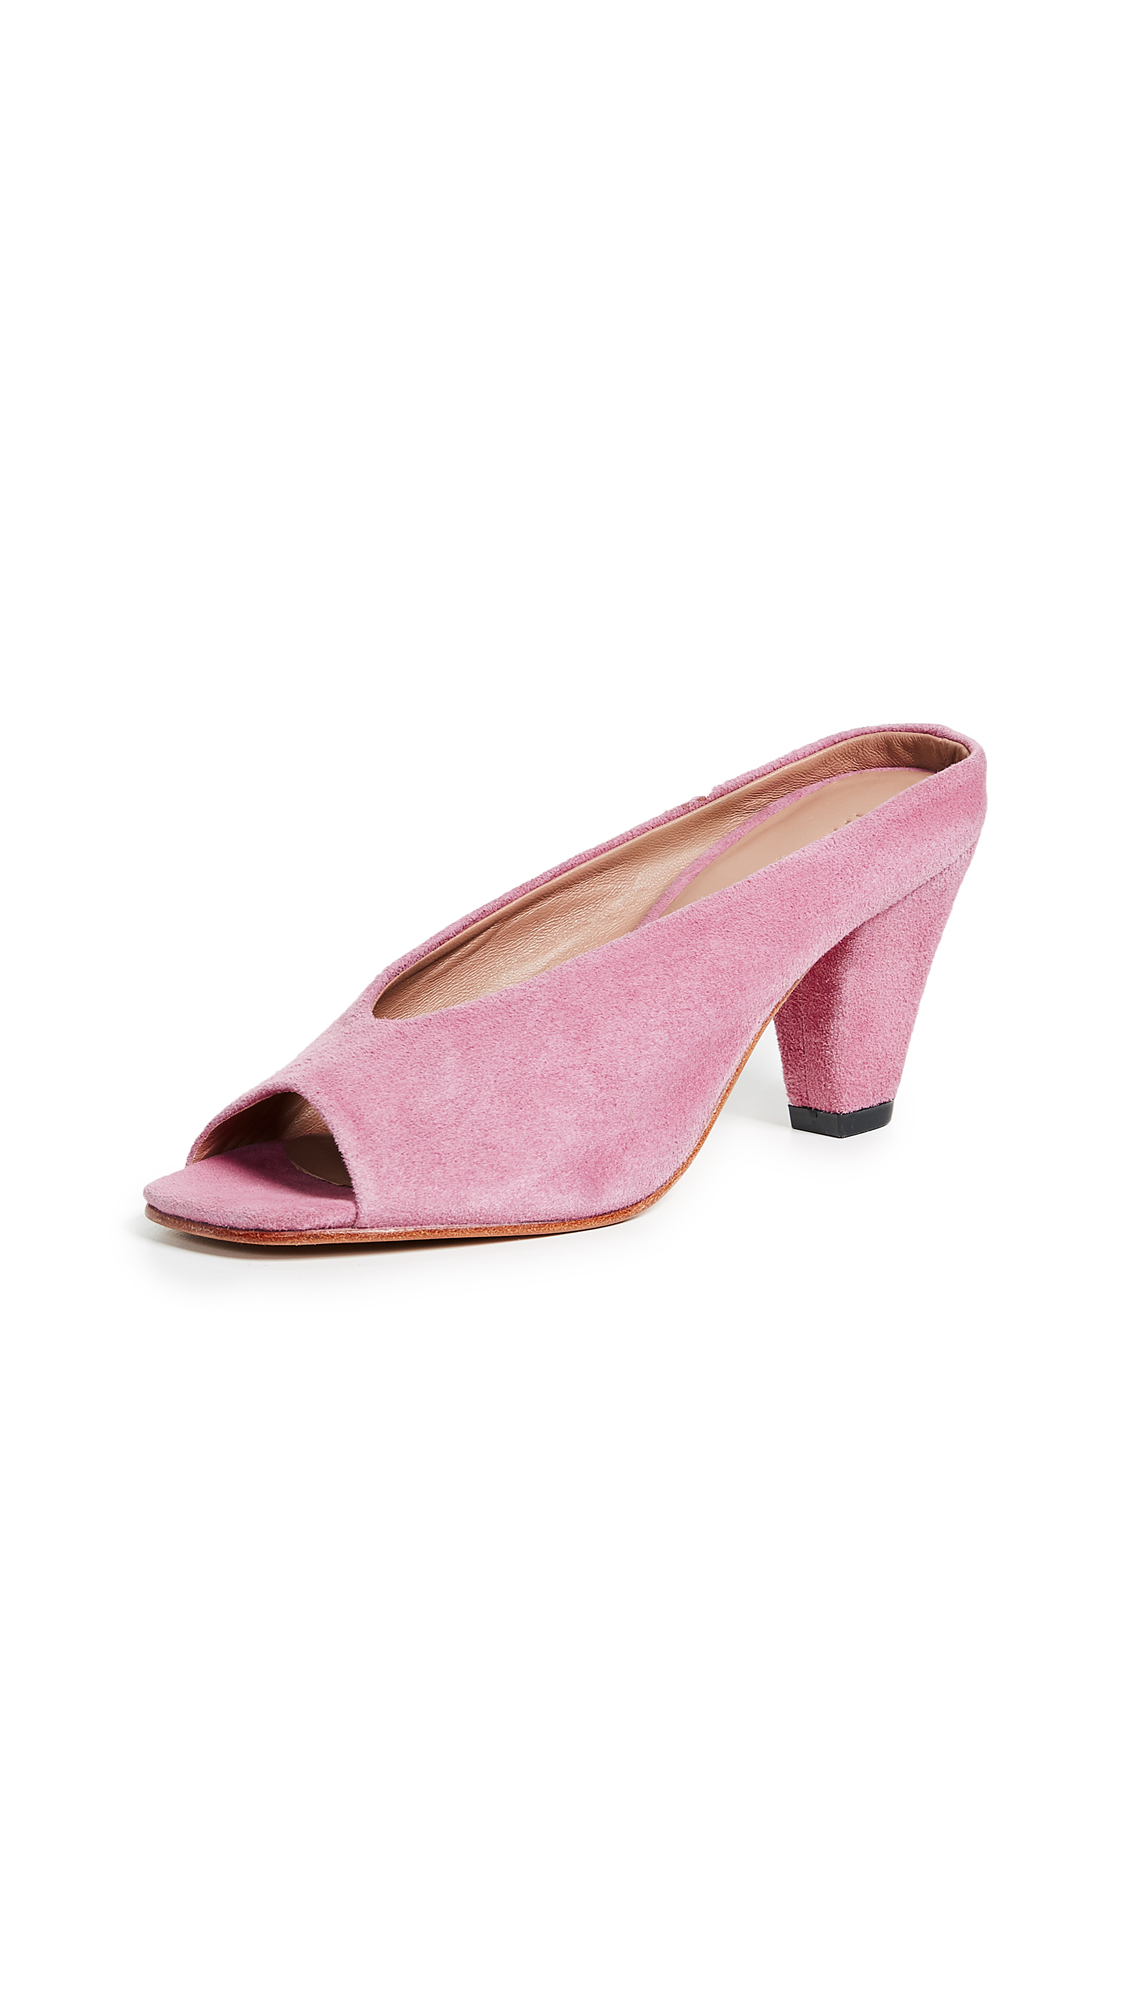 Rachel Comey Rouse Mules - Pink